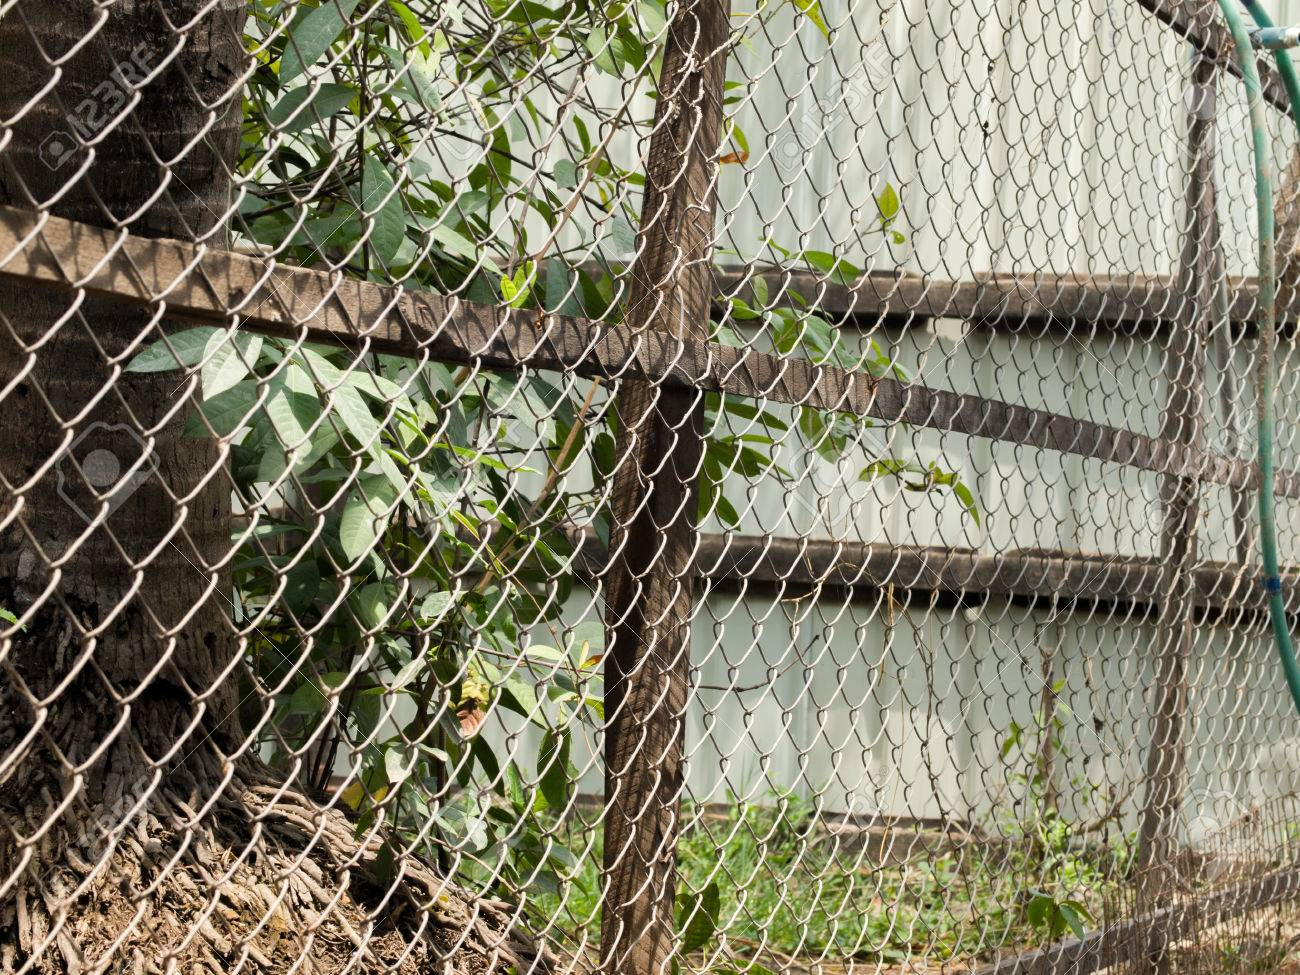 COLOR PHOTO OF CHAIN-LINK FENCE (ALSO REFERRED TO AS WIRE NETTING ...